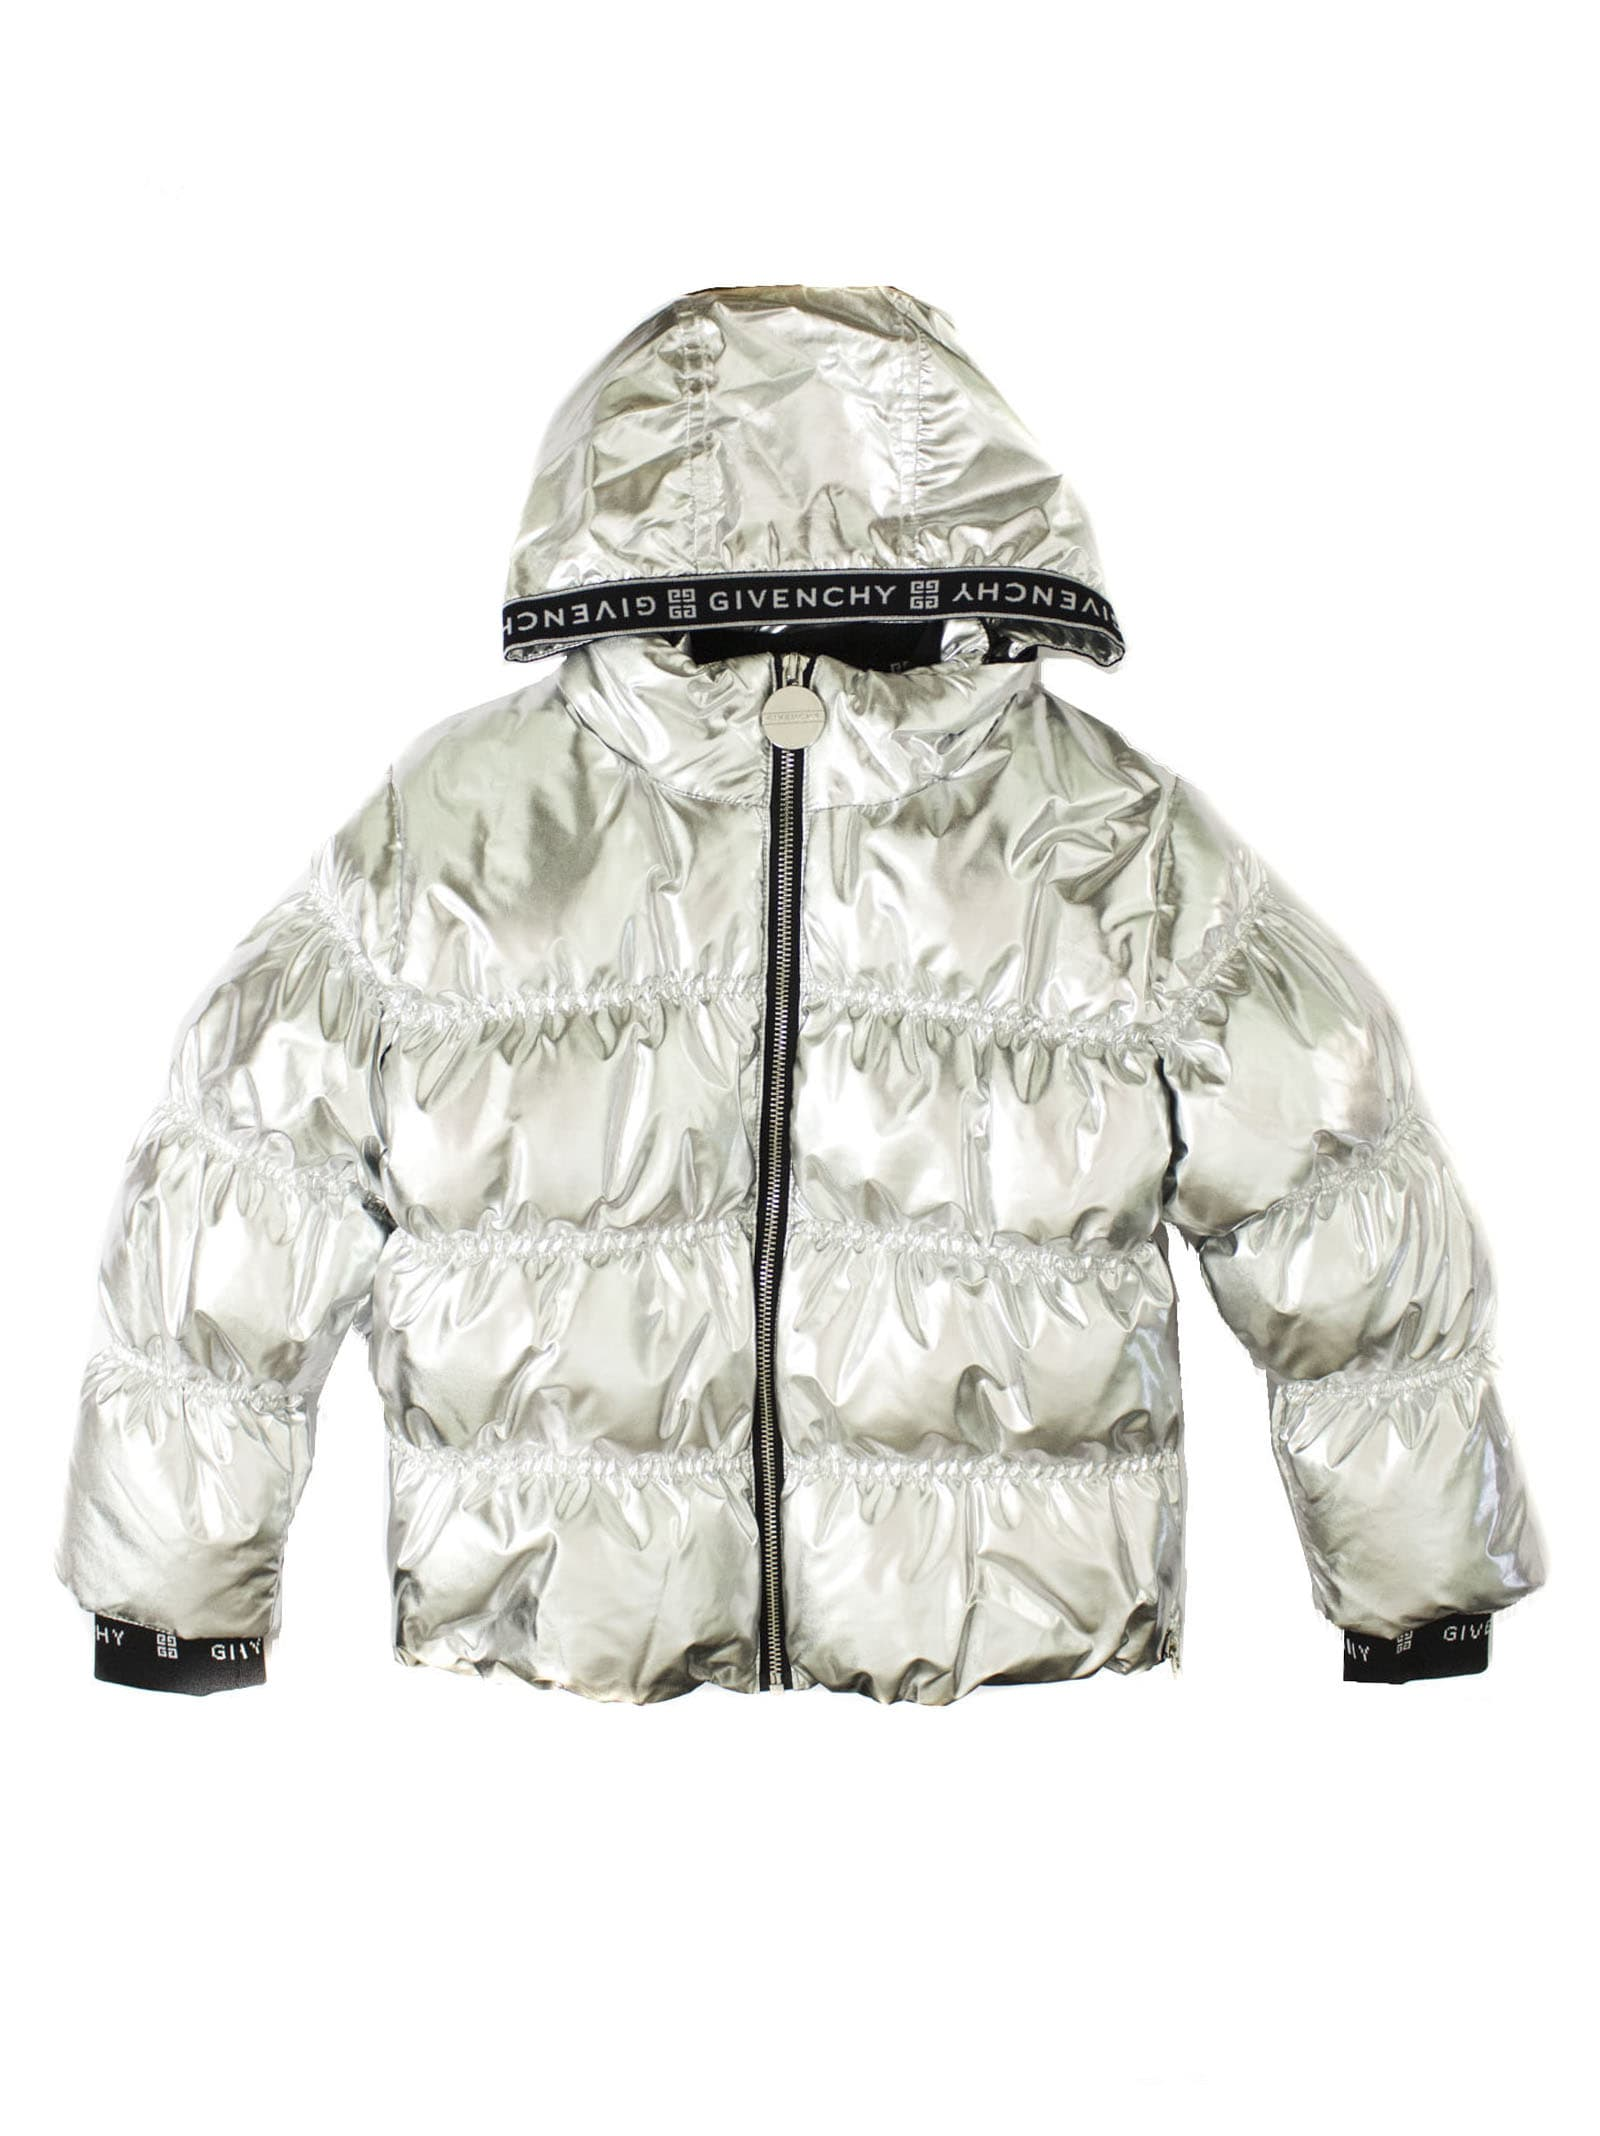 Givenchy Kids' Silver Shell Puffer Coat In Argento